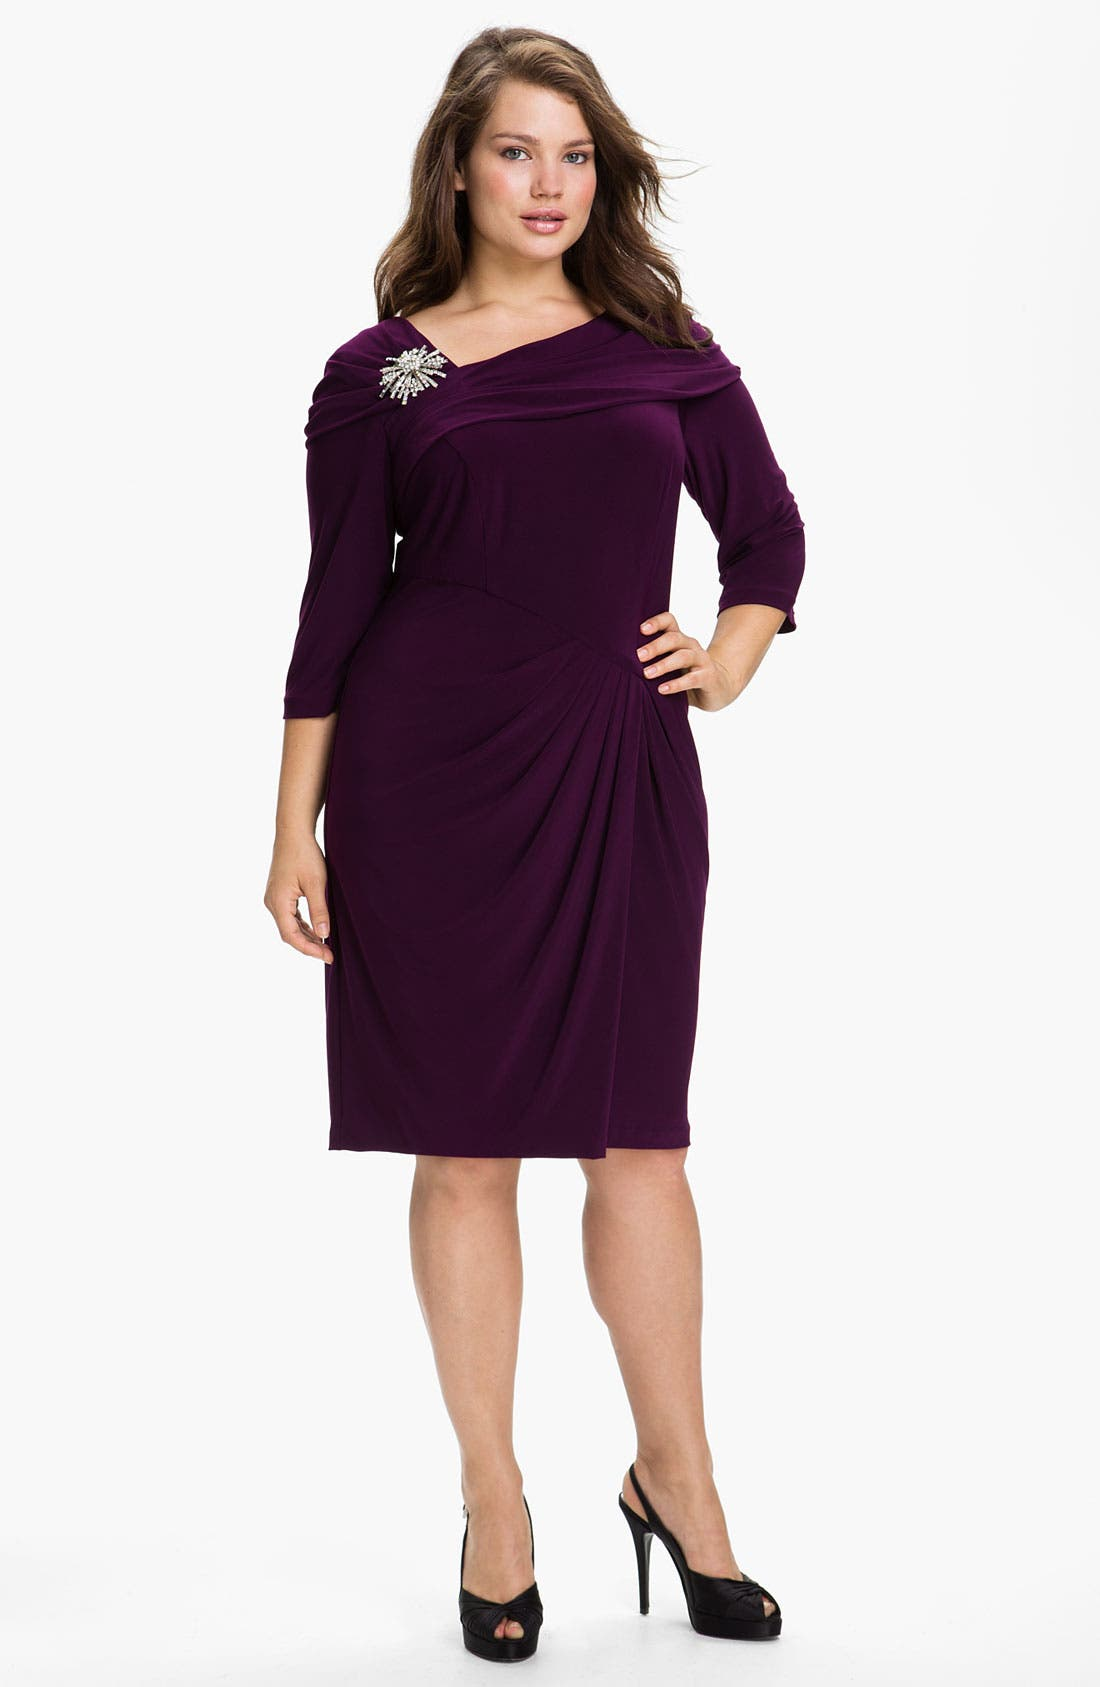 Alternate Image 1 Selected - Alex Evenings Embellished Faux Wrap Jersey Dress (Plus)